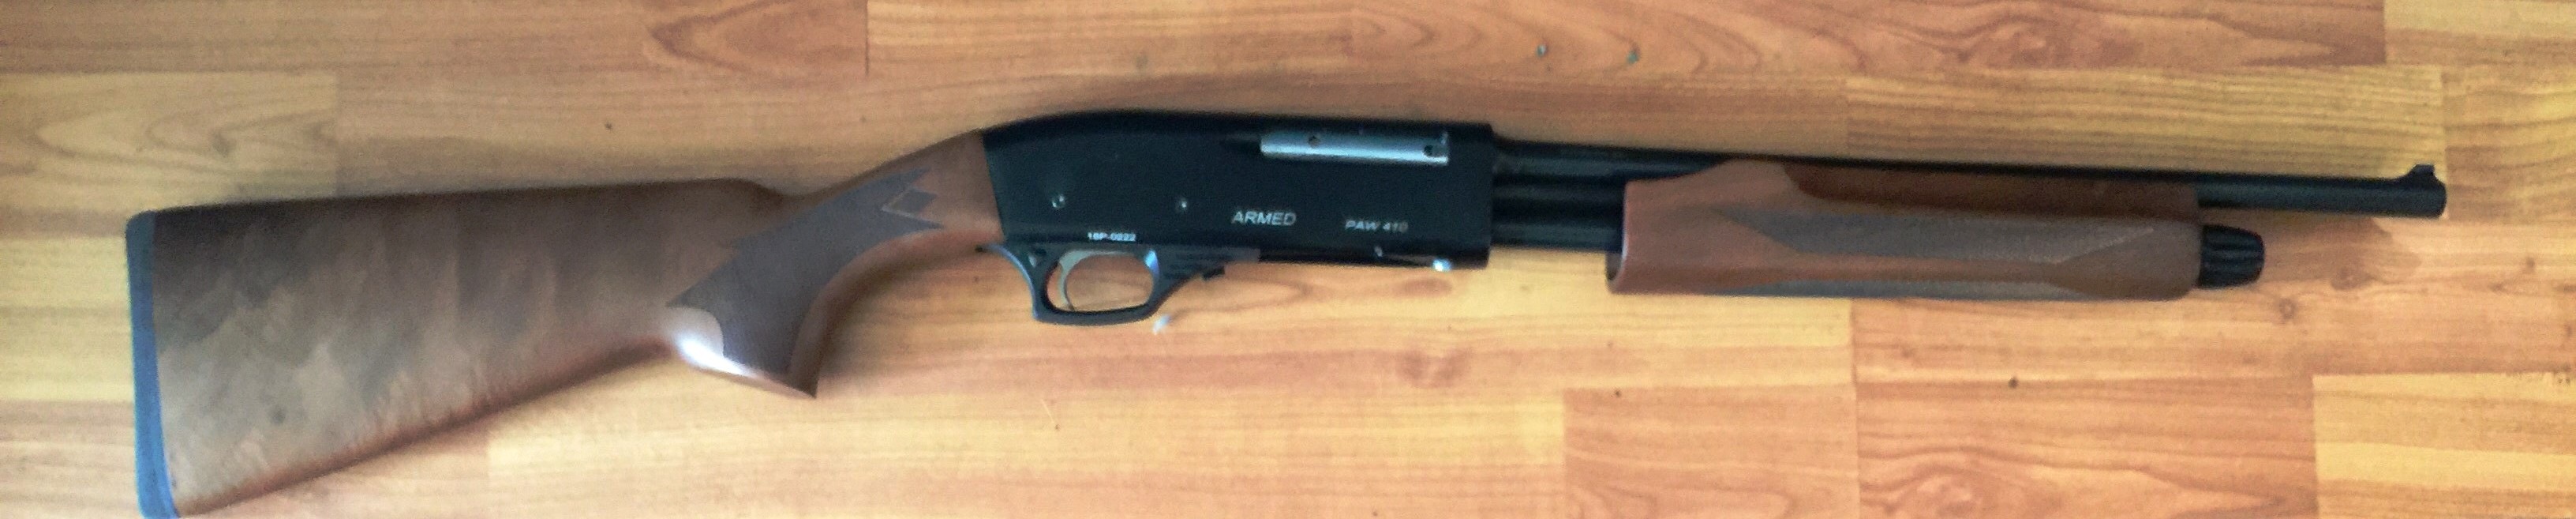 Gladiator Pump Action 410 GA 16 inch barrel Non restricted